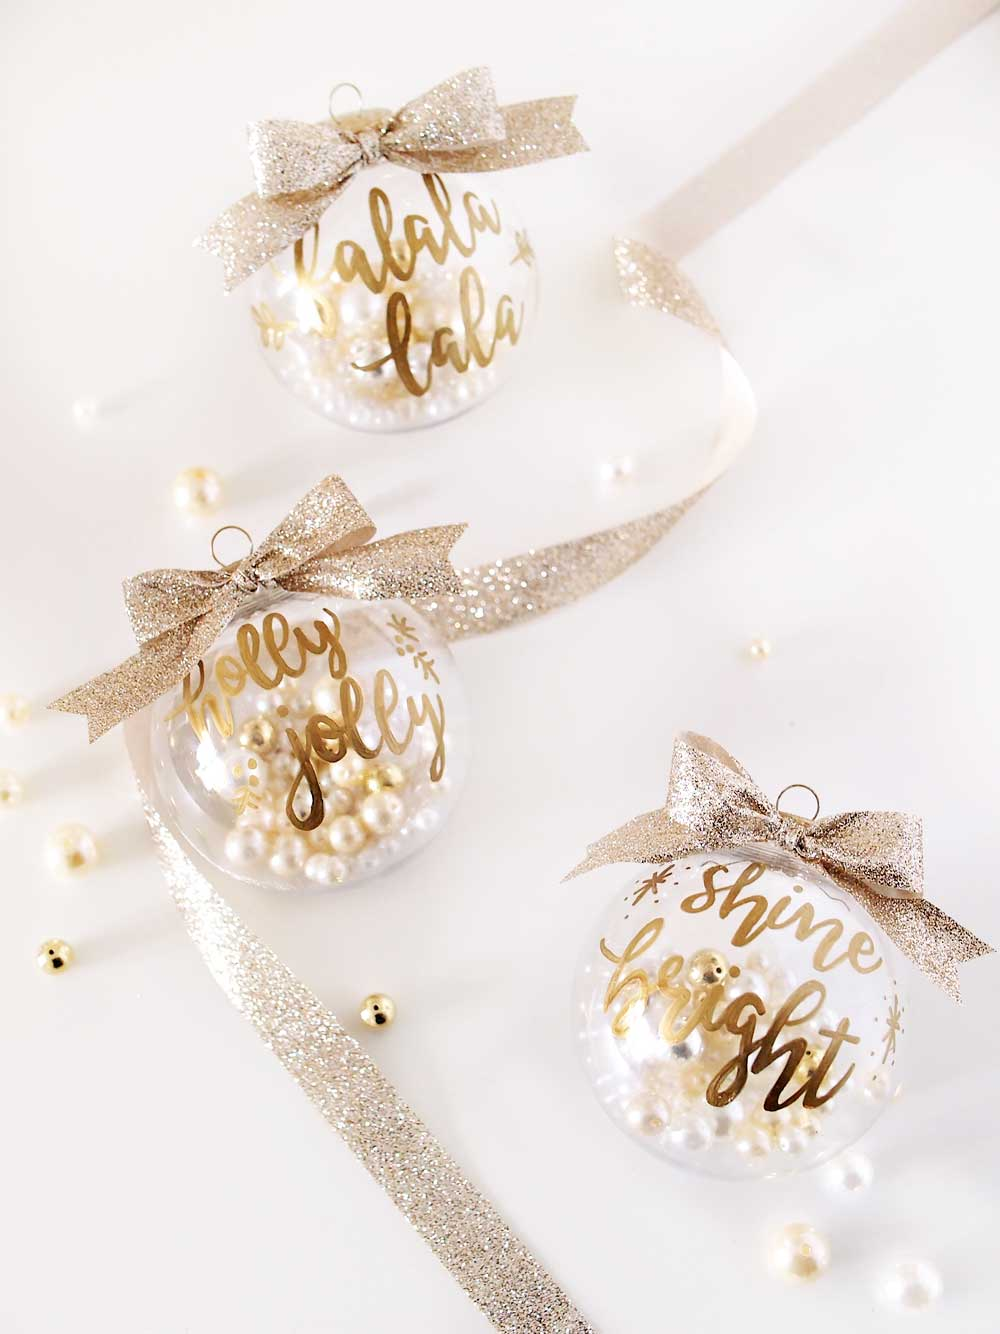 Personalized Gold Handlettering Christmas Ornaments - DIY holiday gift ideas